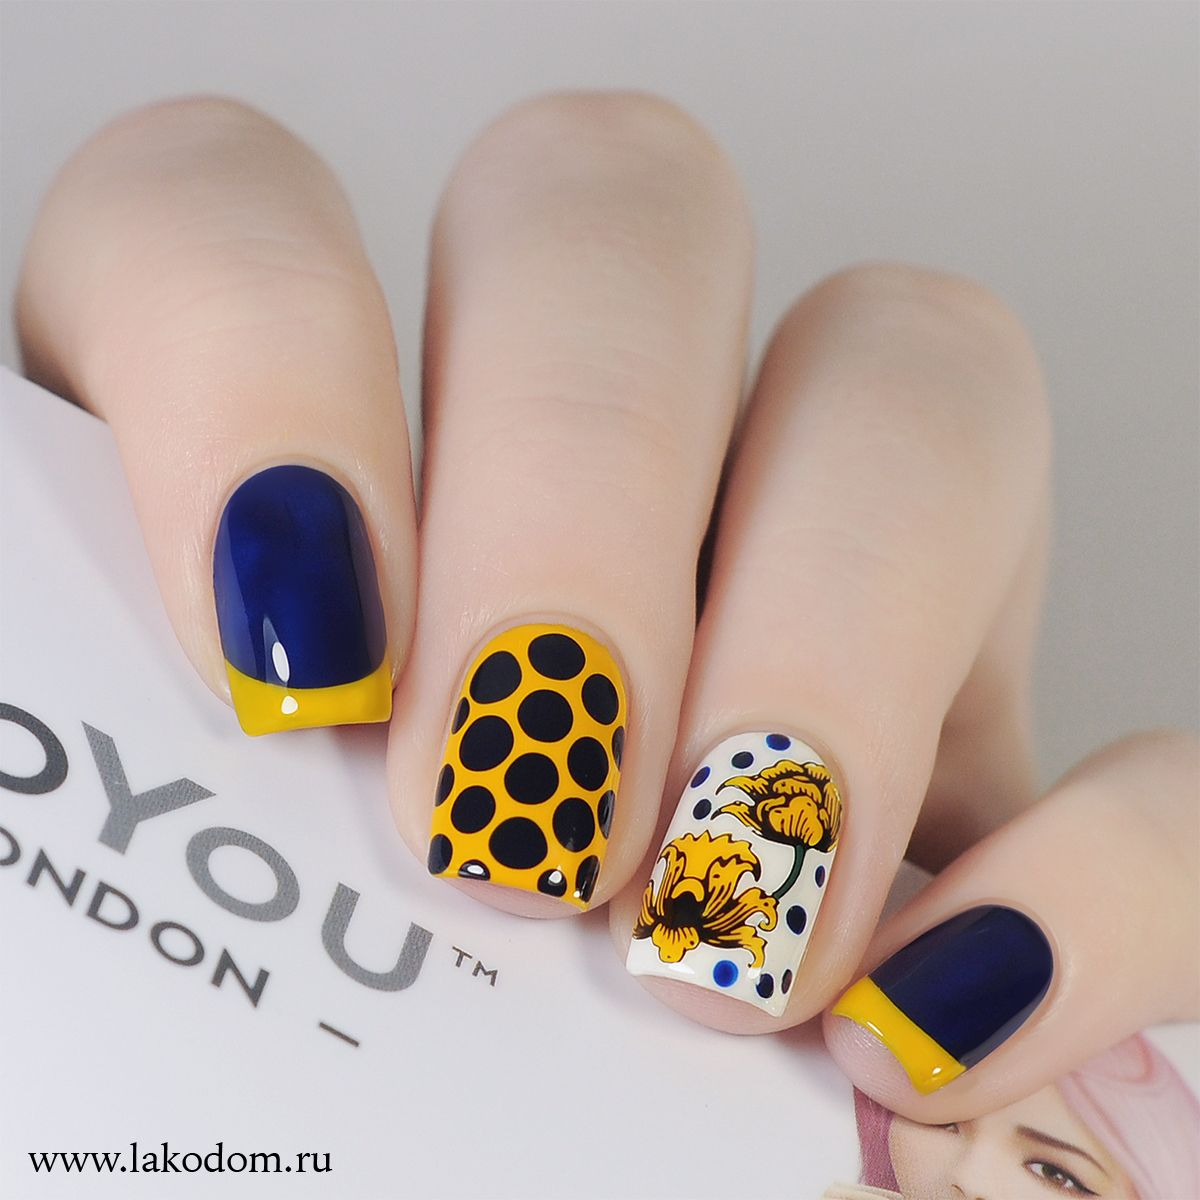 moyou-london-asia-11-swatches-03-1200x1200.jpg (1200×1200 ...